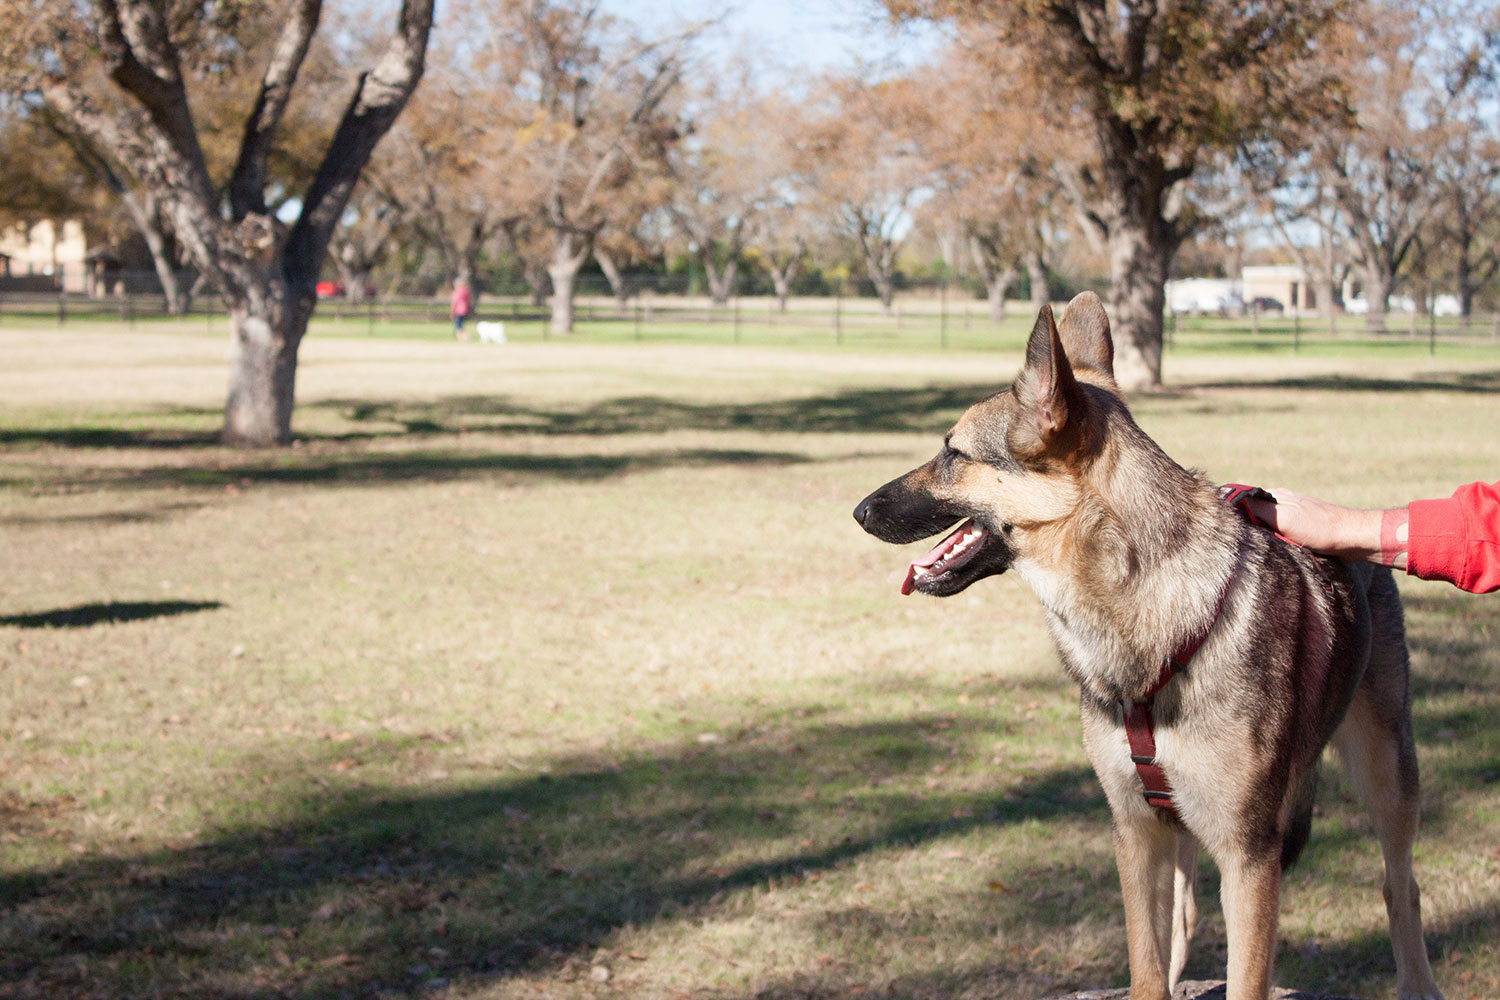 German Shepherd with its owner at the Bark Park in Georgetown, TX